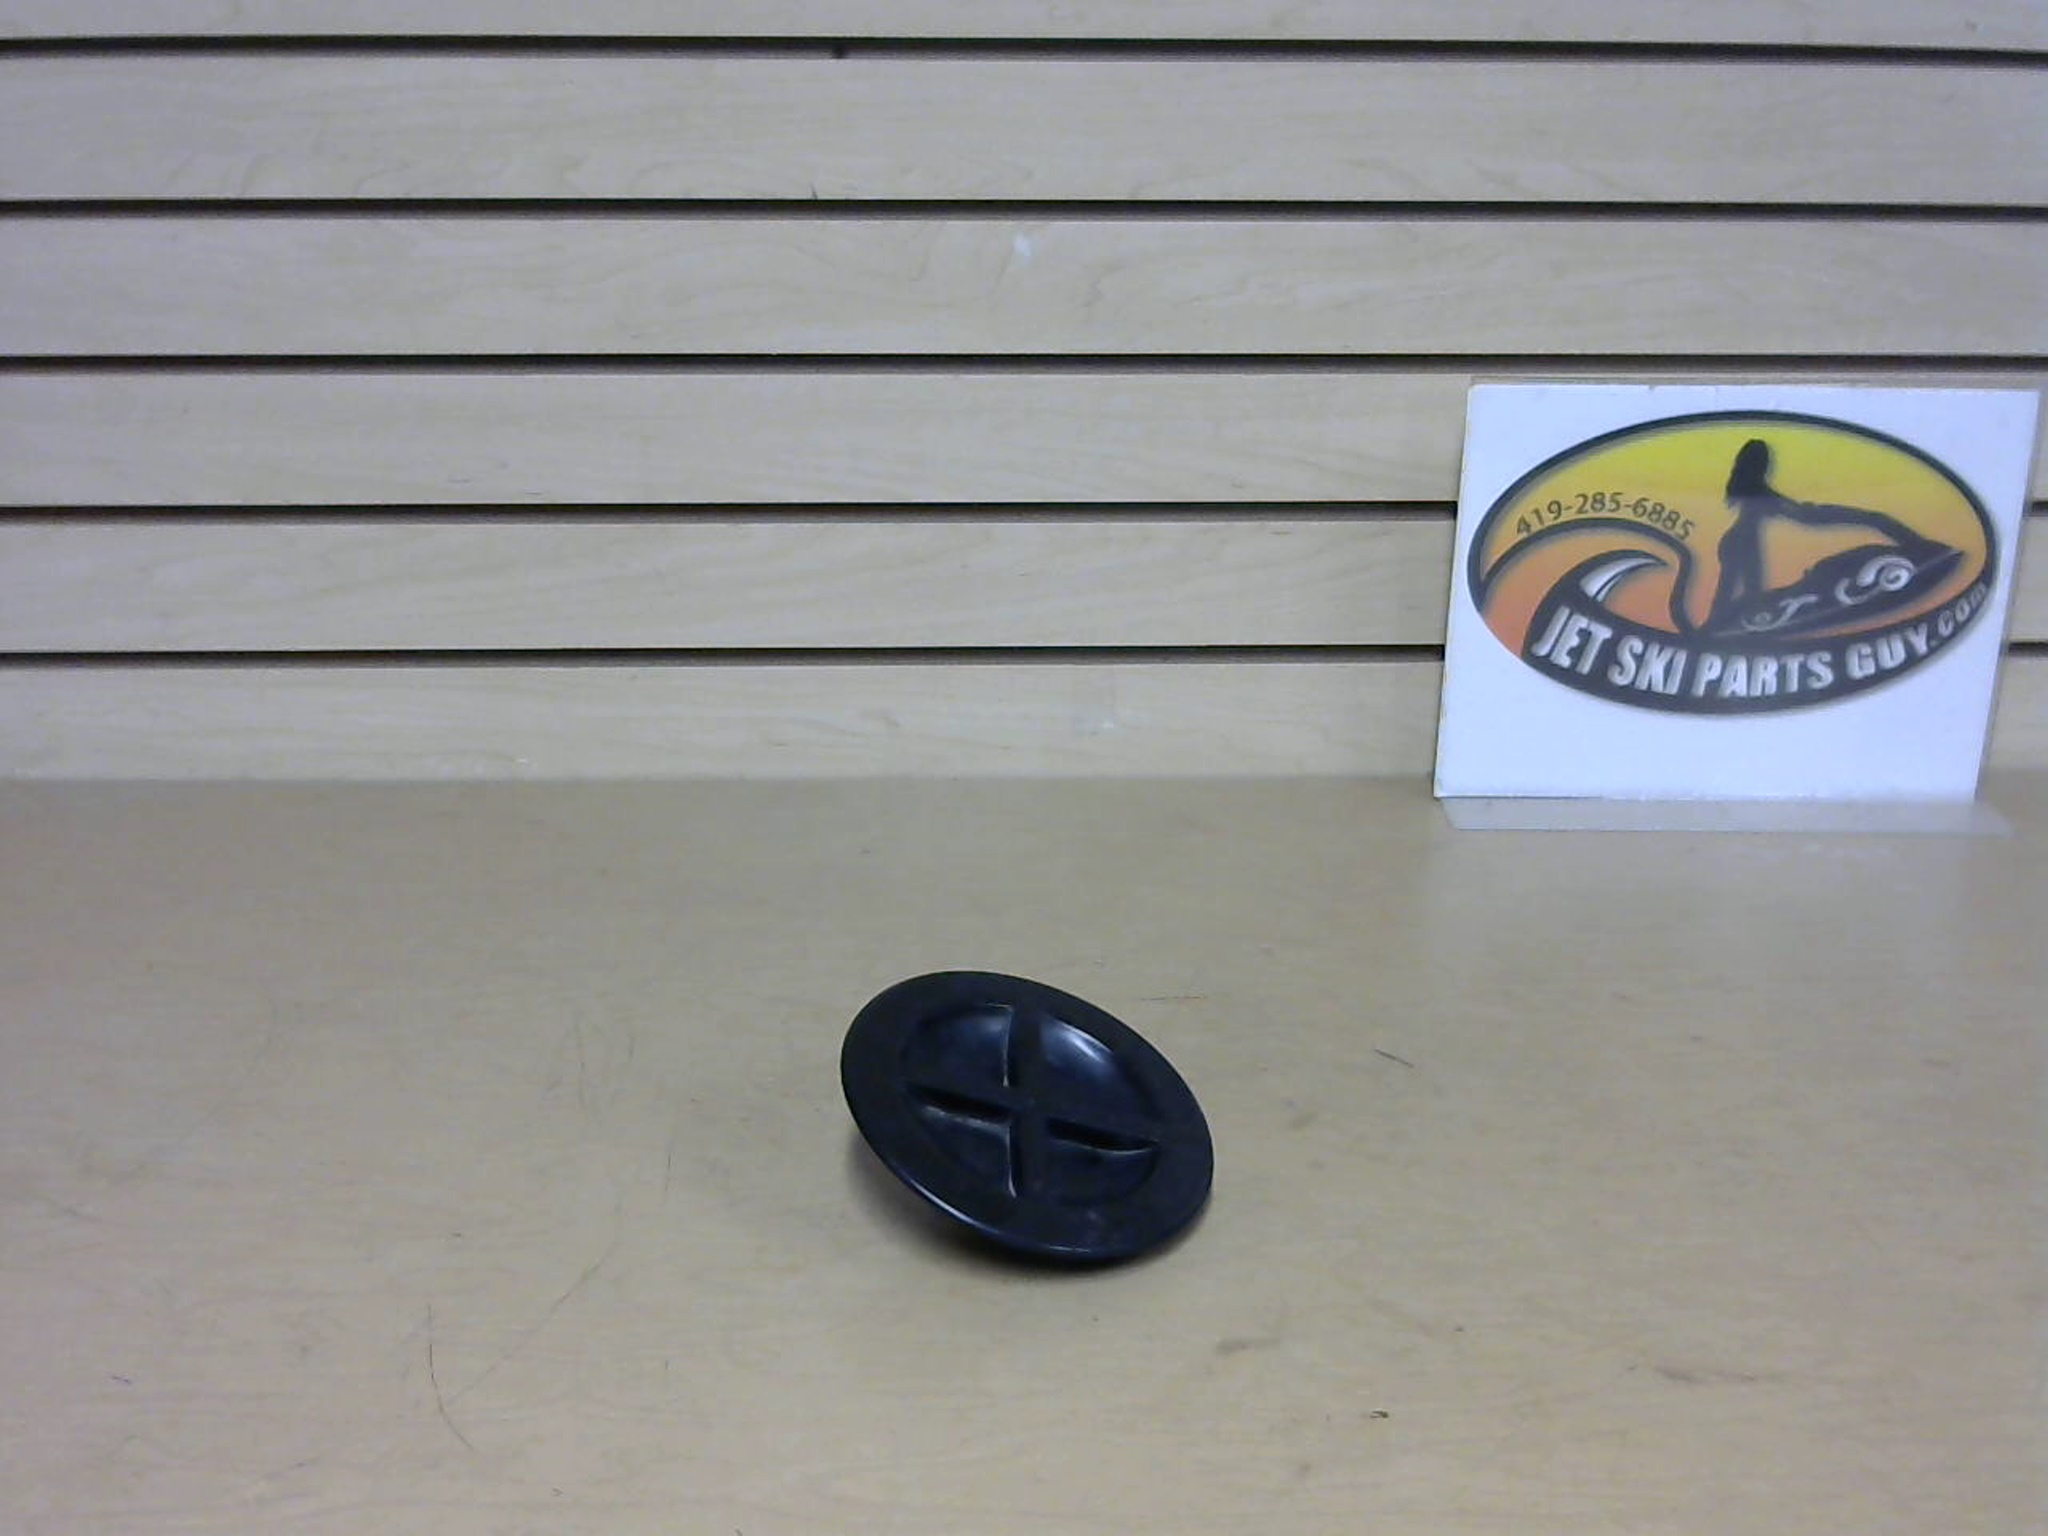 1997 Tigershark Daytona 1000 Storage Lid Cover 0406-208